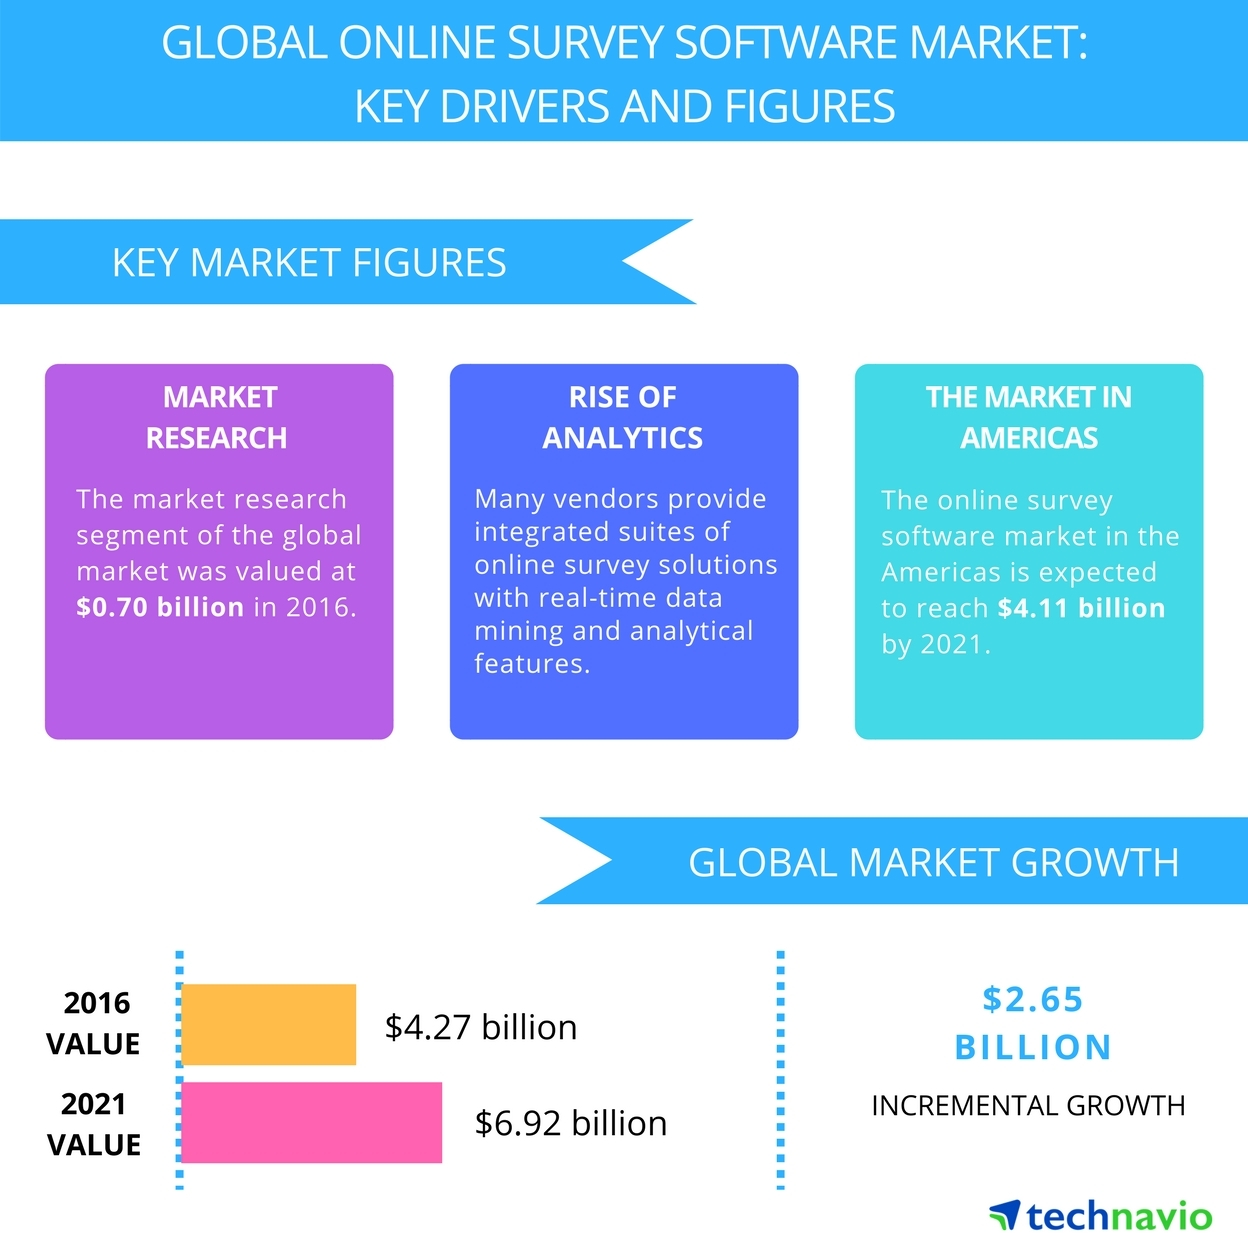 Technavio has published a new report on the global online survey software market from 2017-2021. (Graphic: Business Wire)